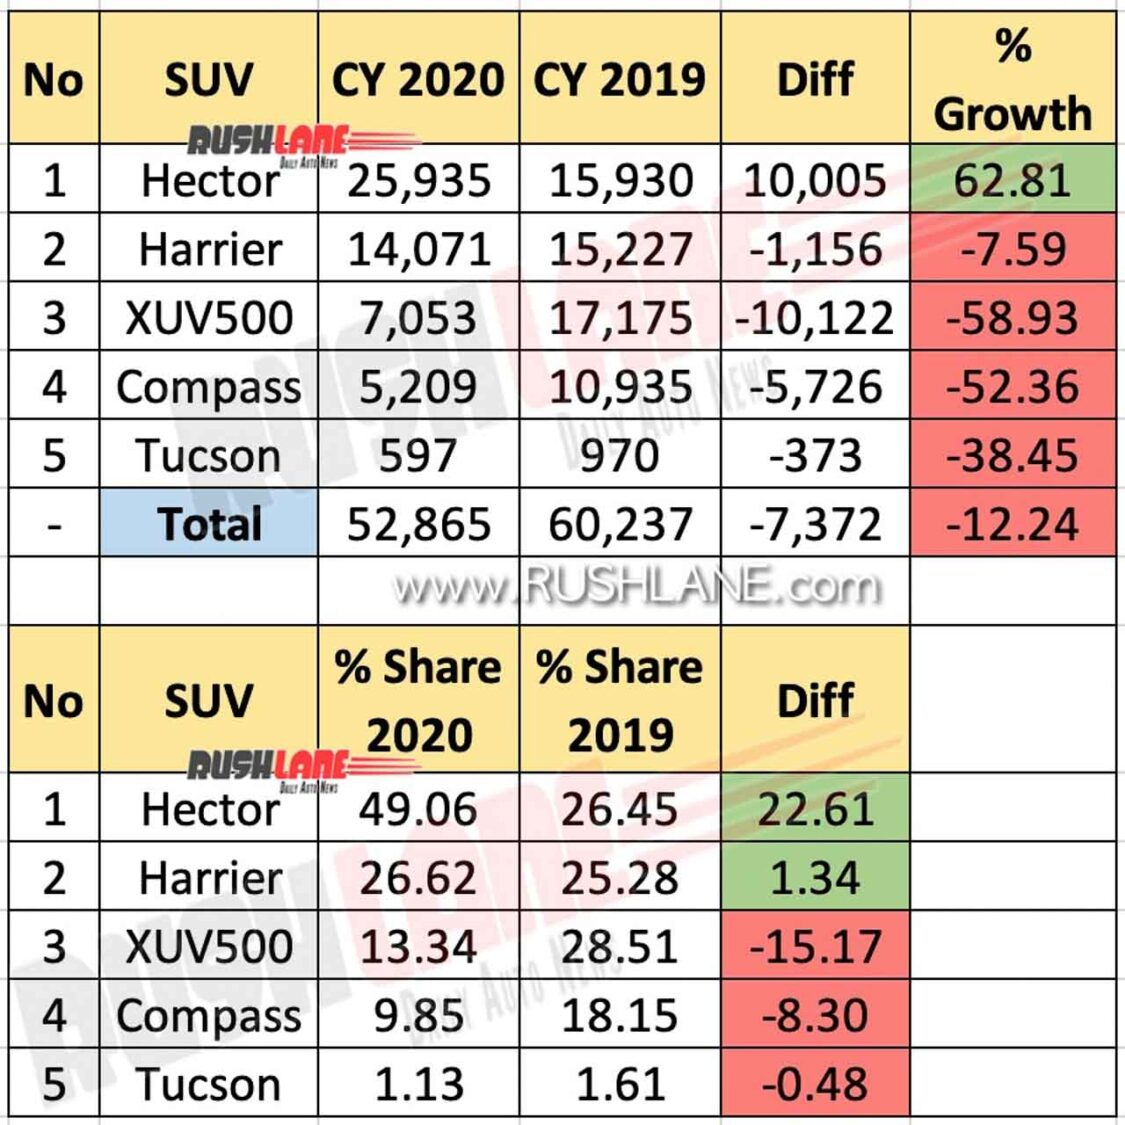 MG Hector vs Rivals in 2020 - Sales and Market Share